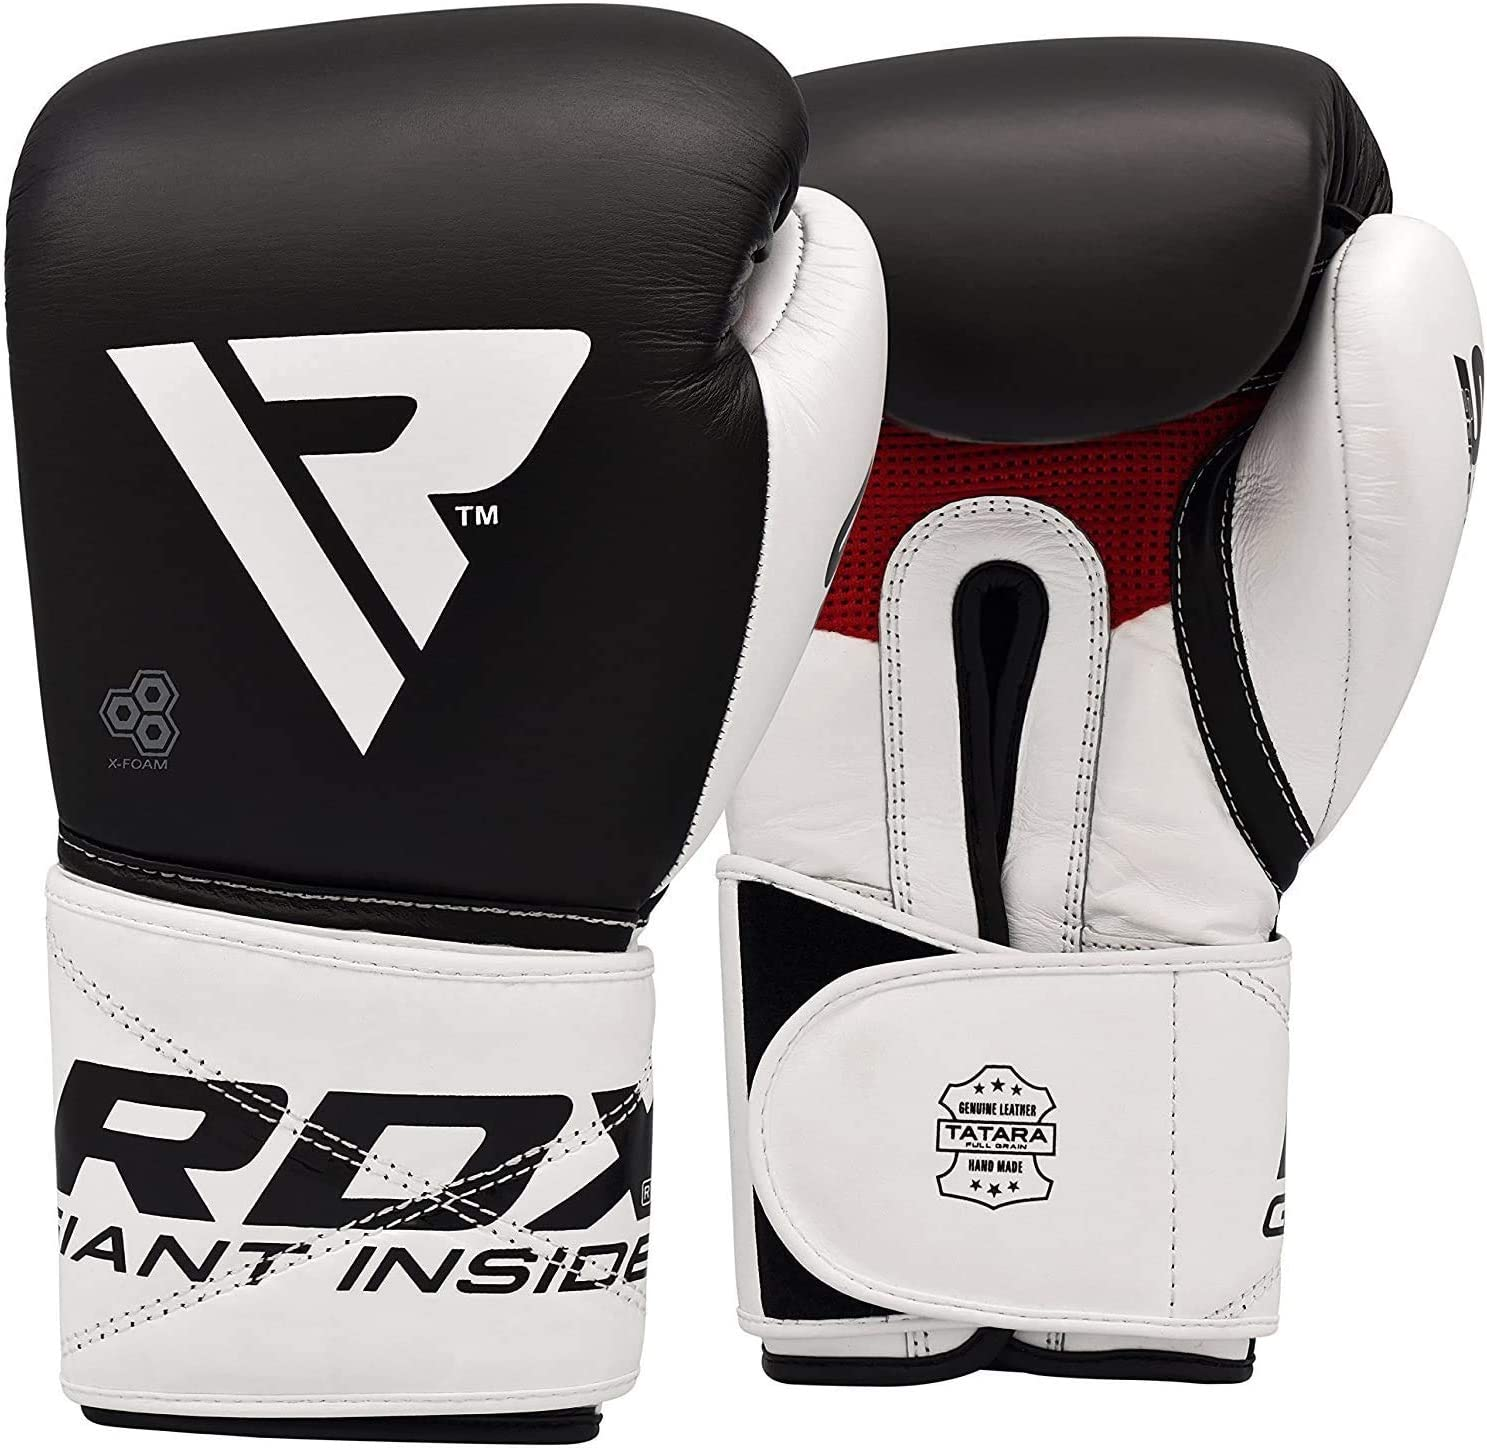 Sparring Cowhide Leather Boxing Gloves MMA FREE Hand Wraps Turkey Training